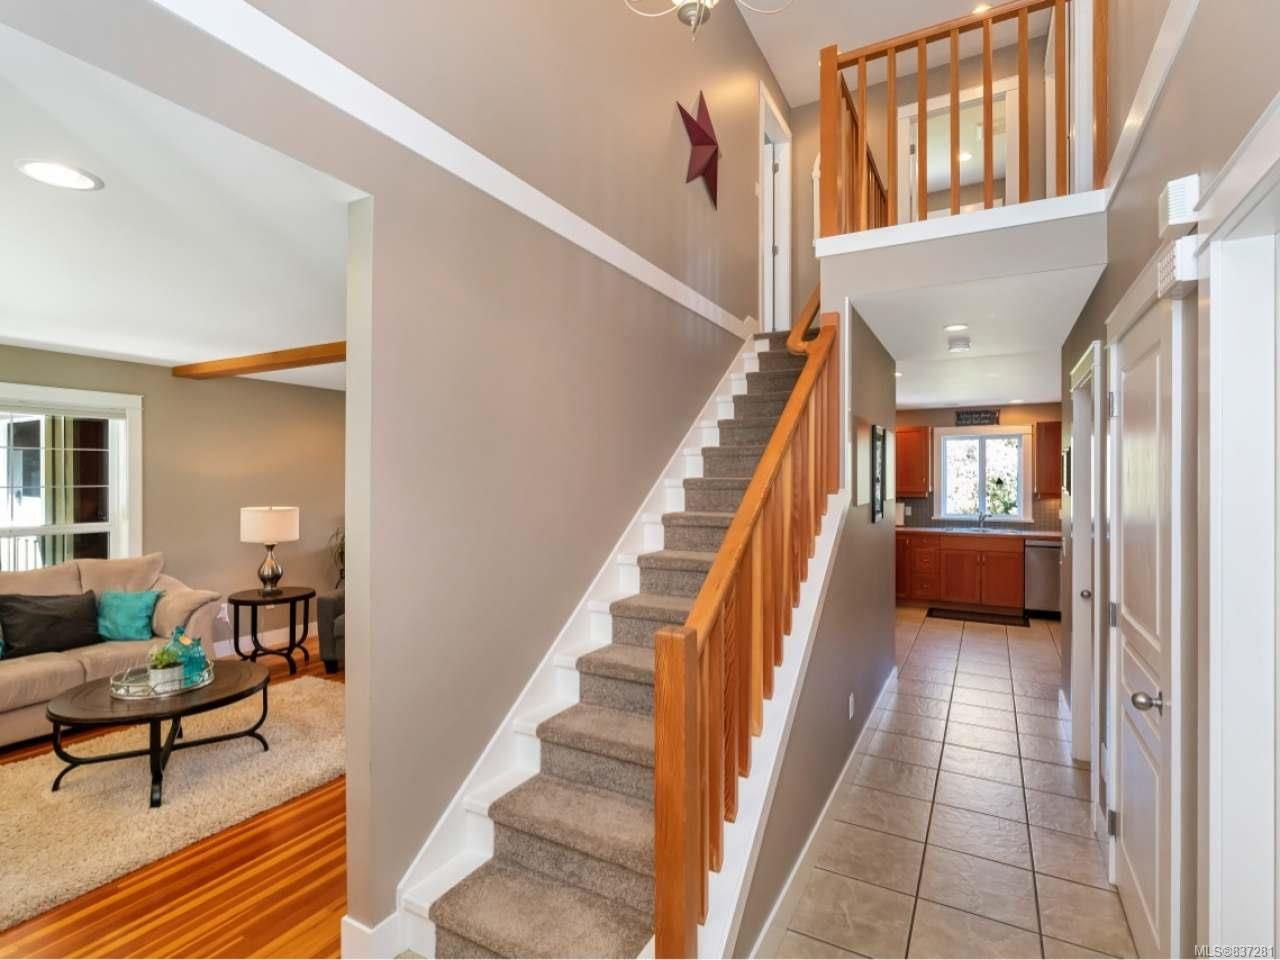 Photo 11: Photos: 925 Lilmac Rd in MILL BAY: ML Mill Bay House for sale (Malahat & Area)  : MLS®# 837281